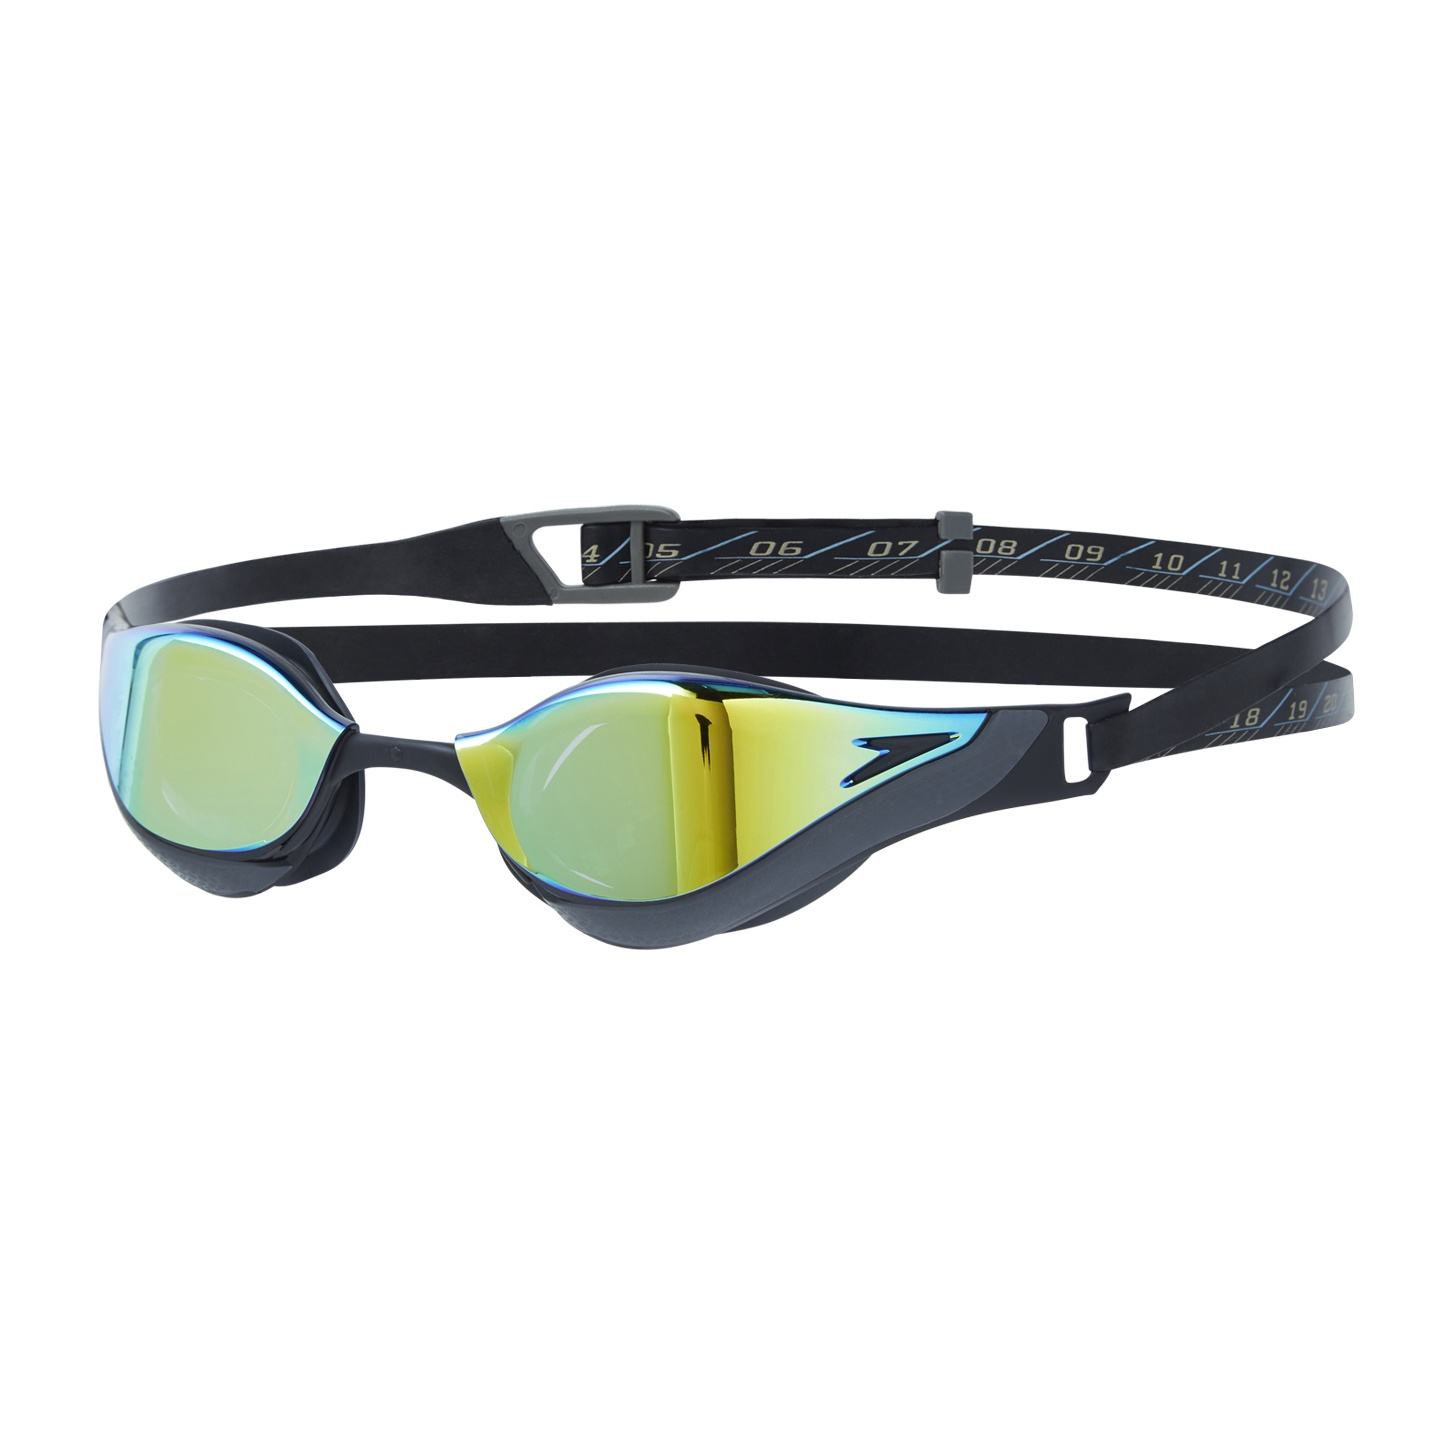 Fastskin Pure Focus Mirror Goggles Black/Gold